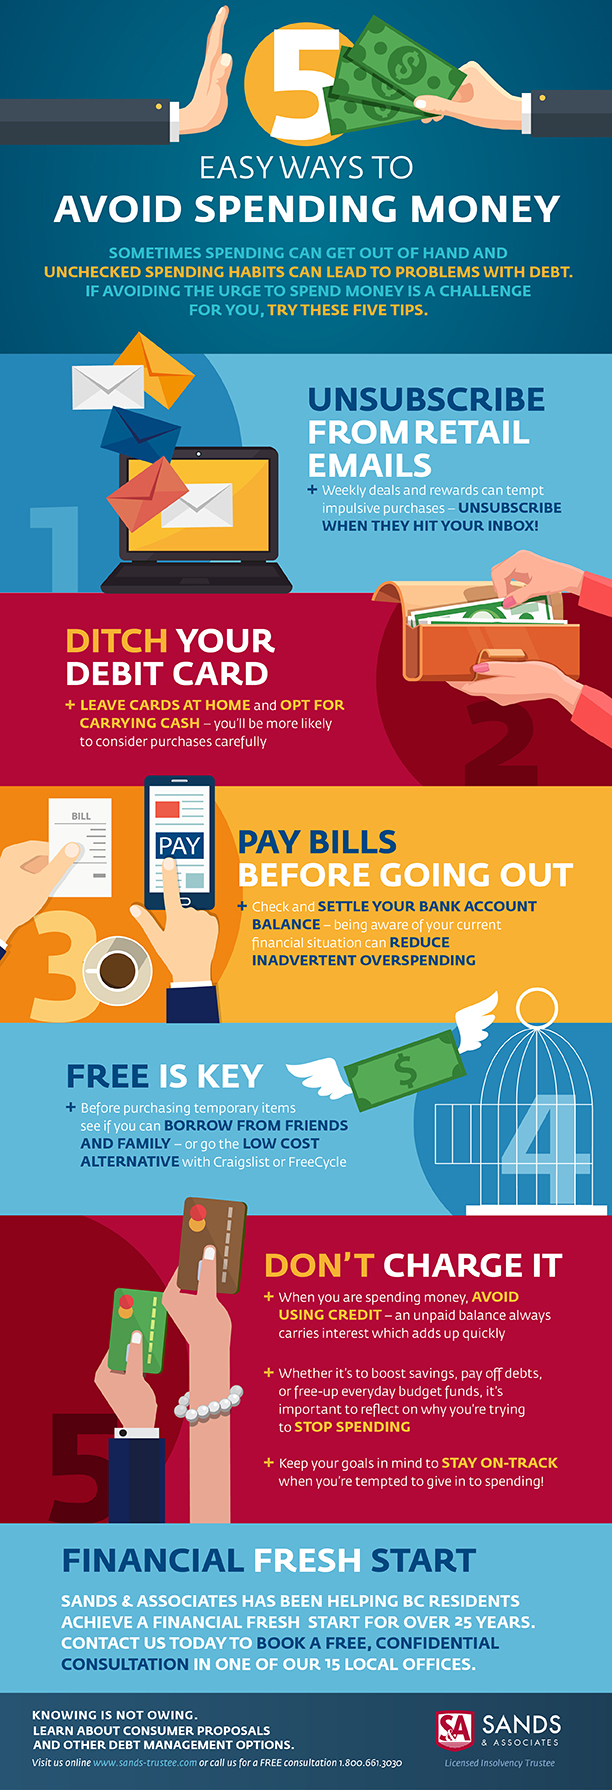 5 Easy Ways to Avoid Spending Money - Sands & Associates Infographic